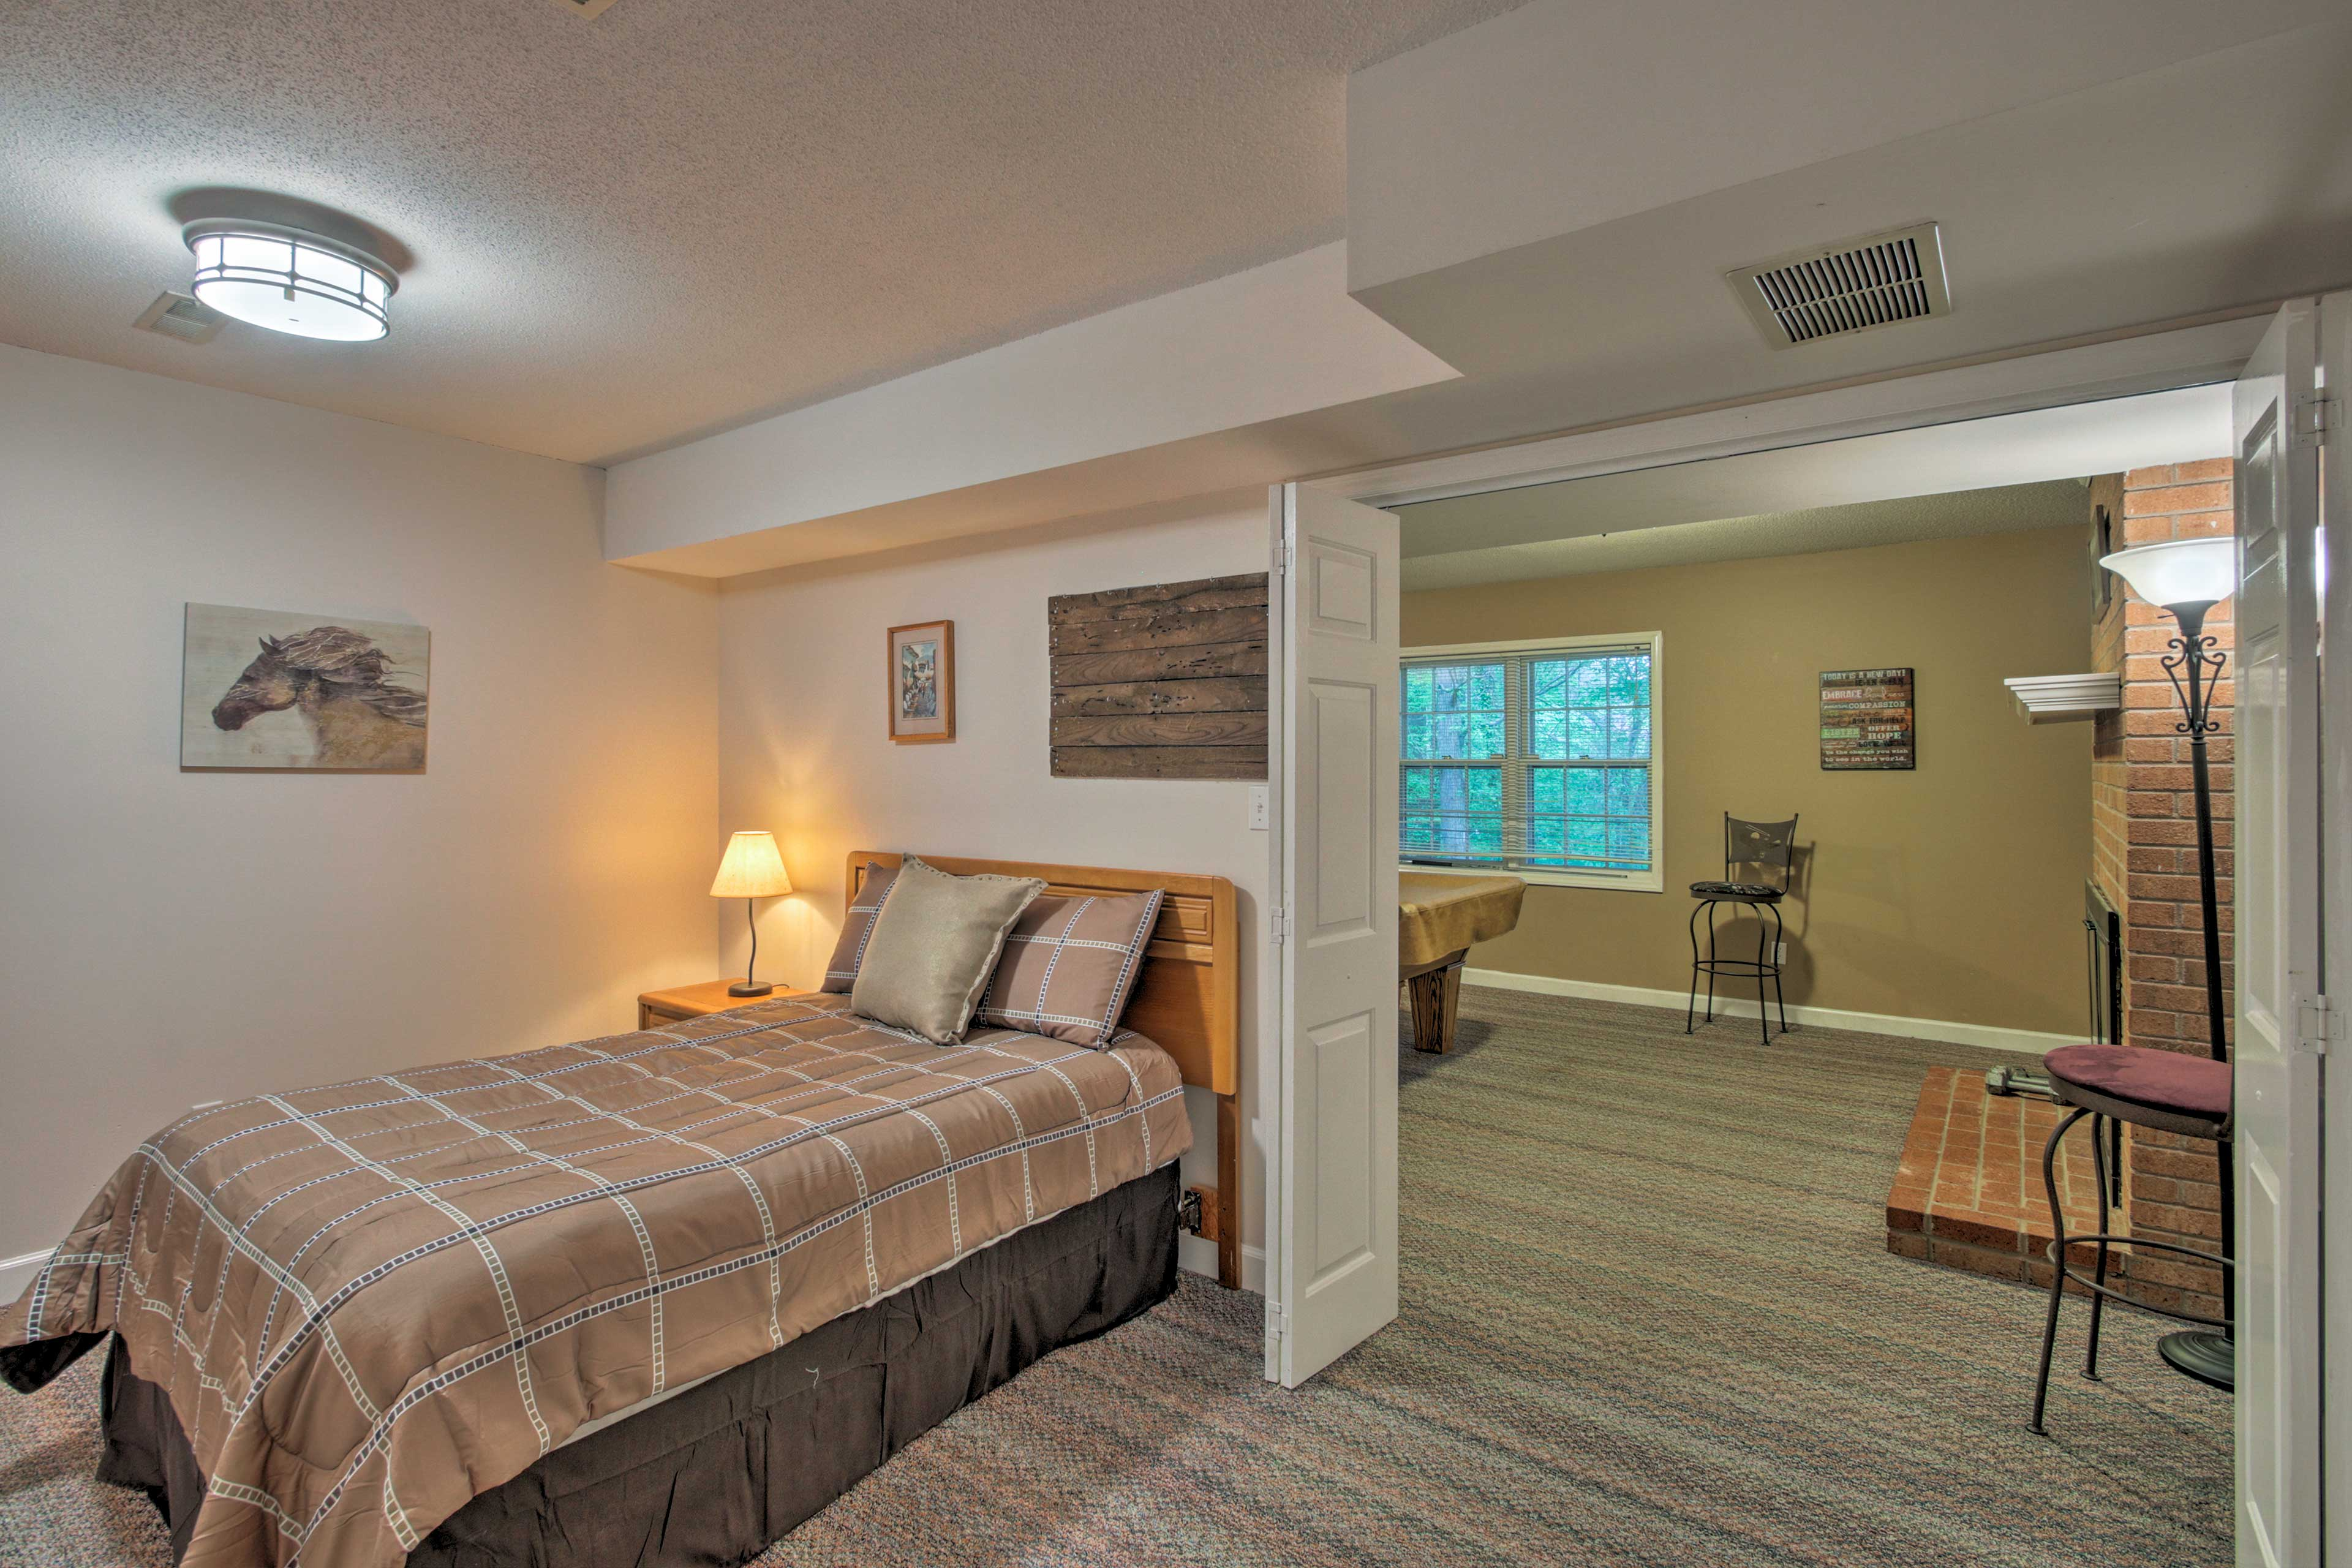 Travelers will have 5 spacious bedrooms to choose from.